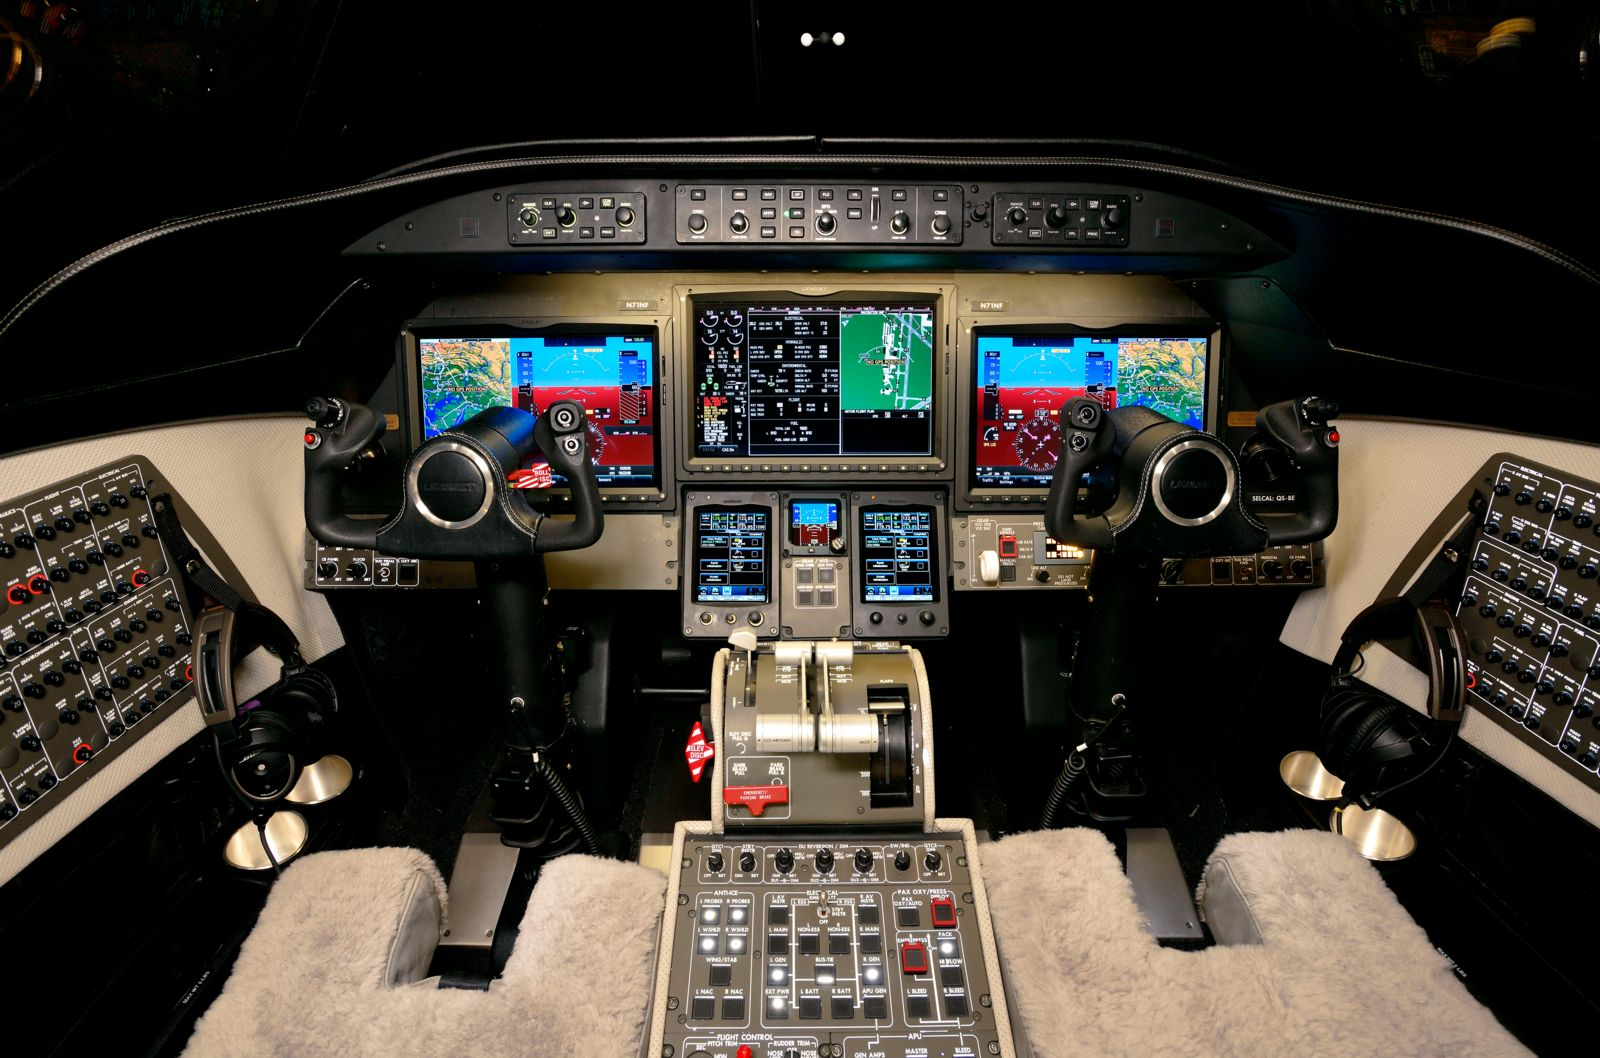 Bombardier Learjet 75  S/N 45-523 for sale | gallery image: /userfiles/files/specs/Lear75/cptb_300retouched.jpg